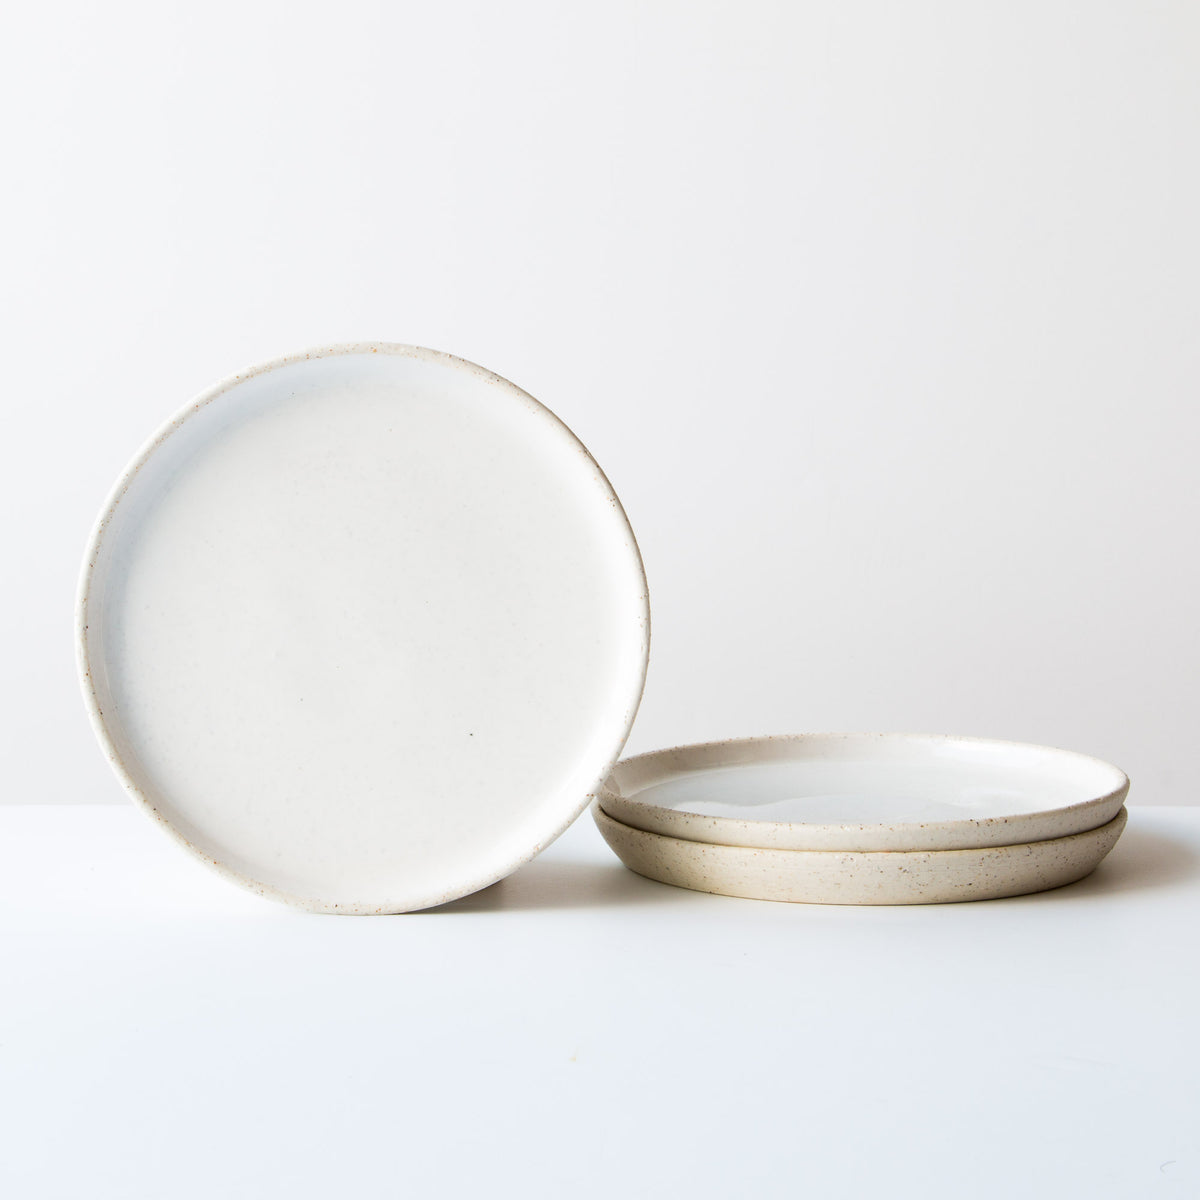 Oatmeal Clay - Soft White Glaze - Small Ceramic Plate - Handmade in Quebec, Canada - Sold by chic & Basta